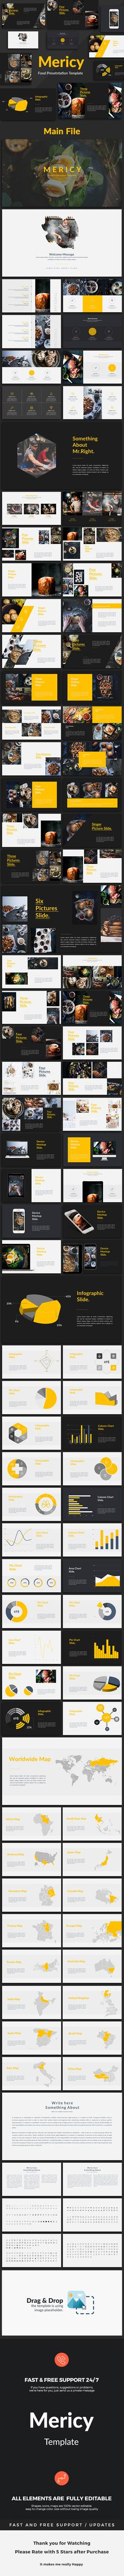 Mericy - Food Powerpoint Template - 98+ Unique Slides